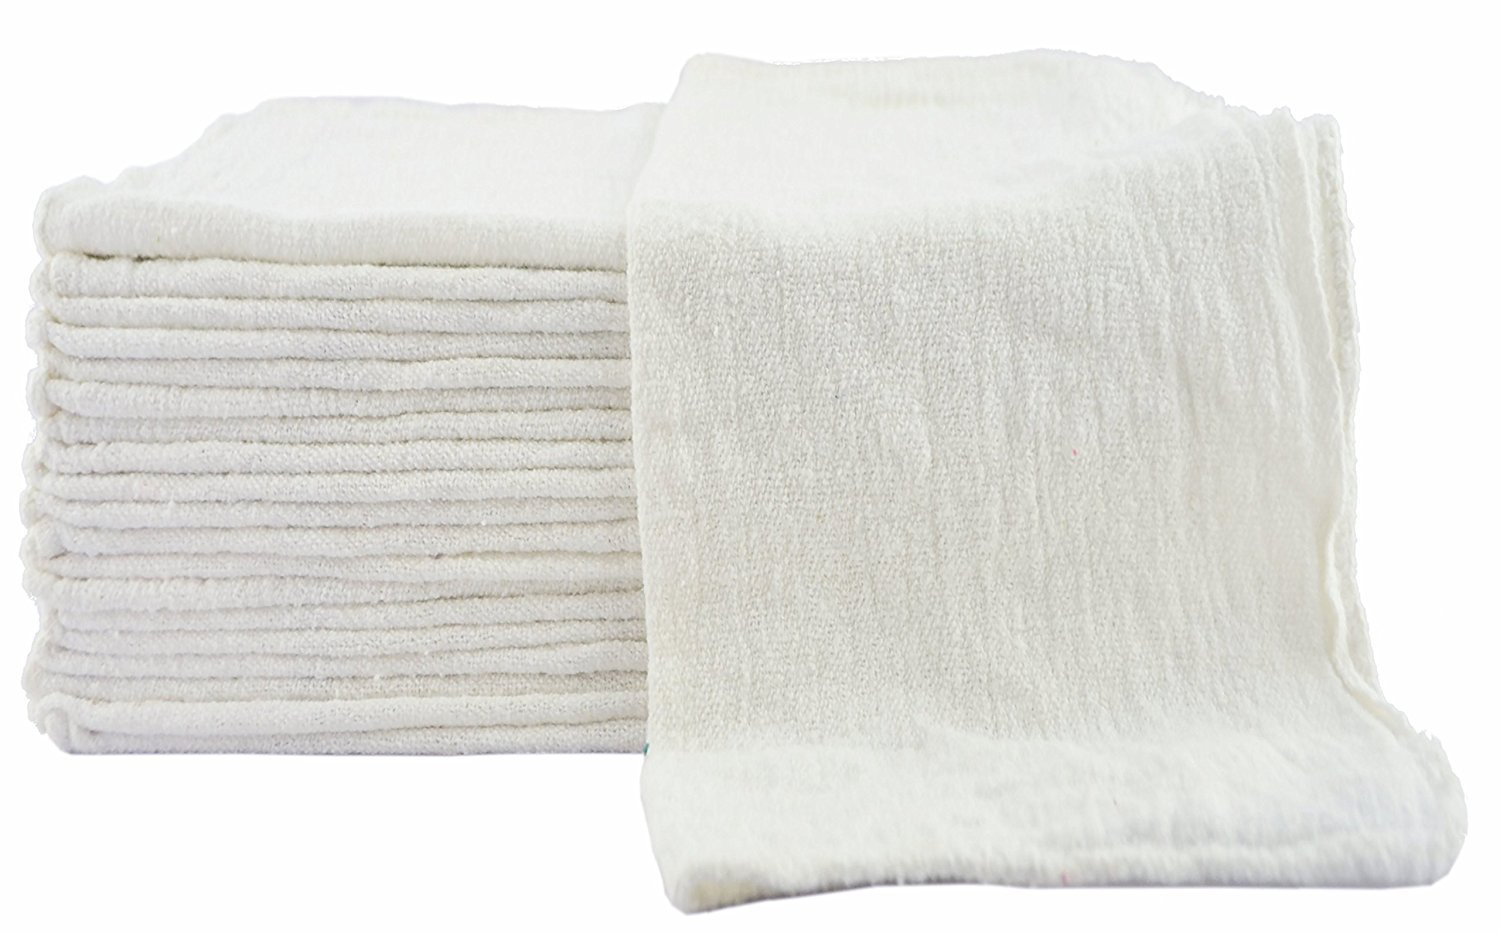 Utopia Towels Shop Towel Towels (Pack of 100) (13 x 13 Inches) Commercial Grade Machine Washable Cotton Washcloths Lint Free White Shop Rag - Perfect for Auto Mechanic Work and Bar Mop (Red) UT0522